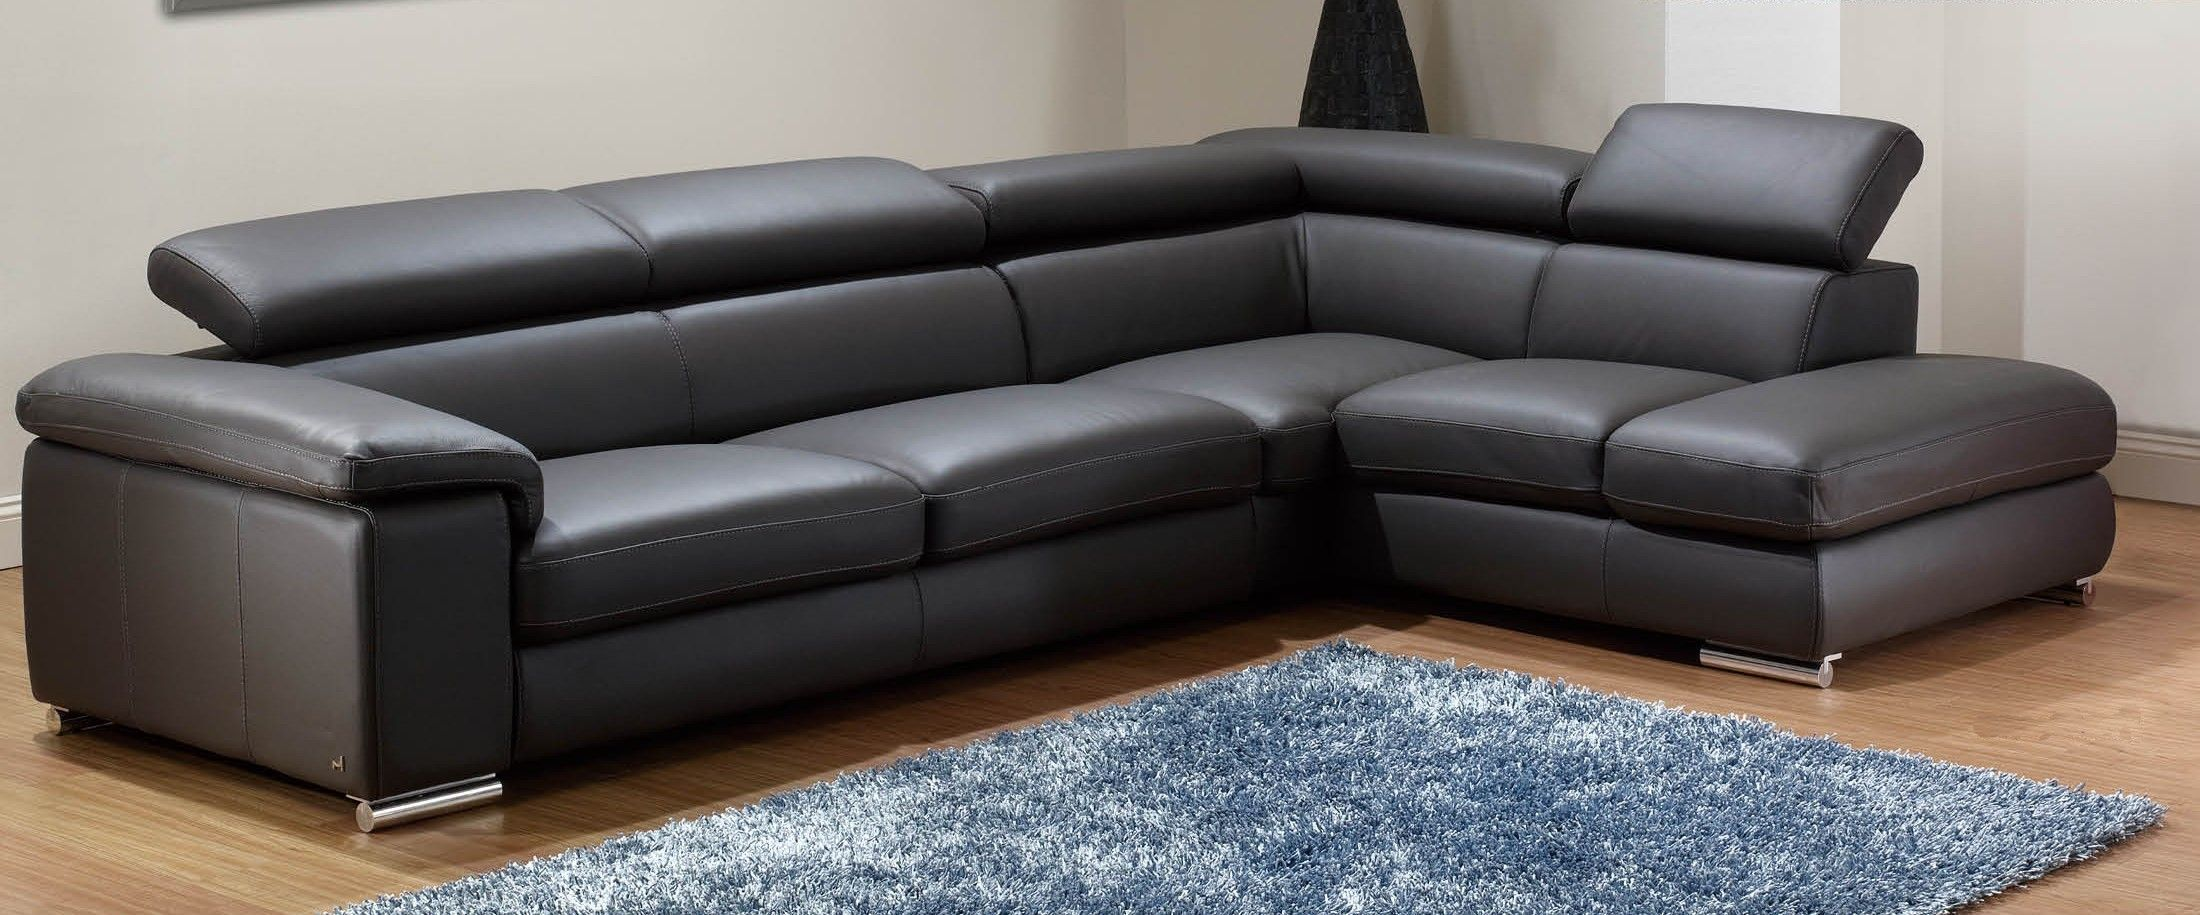 awesome modern leather sectional sofa  epic modern leather  - awesome modern leather sectional sofa  epic modern leather sectional sofa in sofas and couches